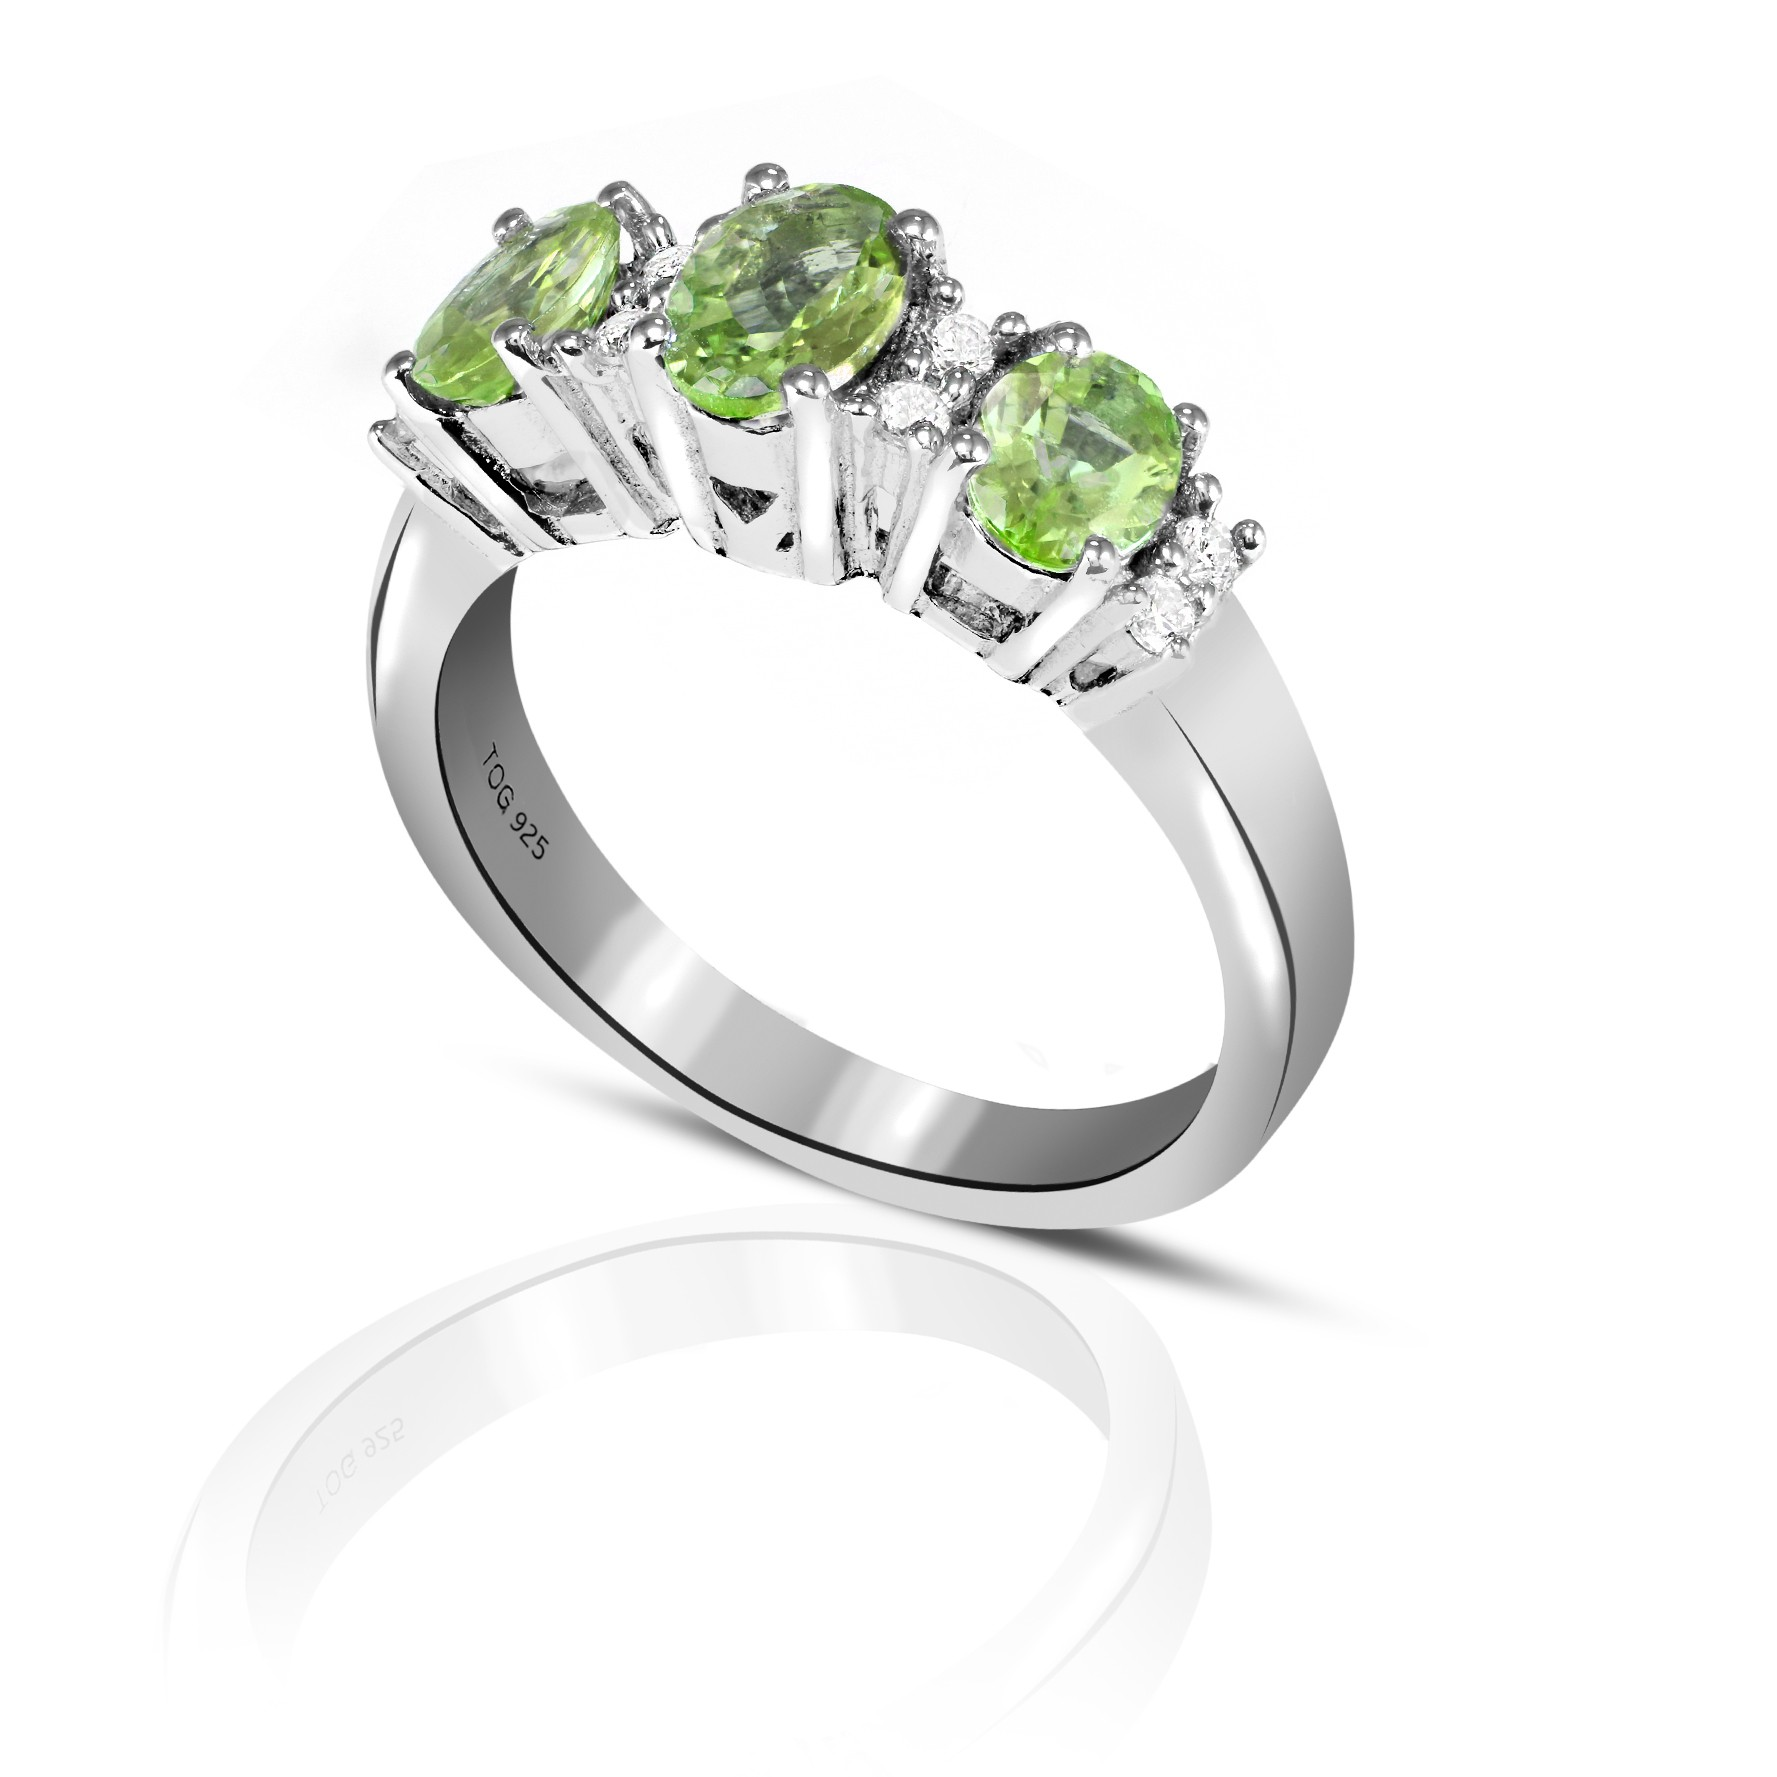 Charming Tourmaline and White Topaz Ring set in Sterling Silver